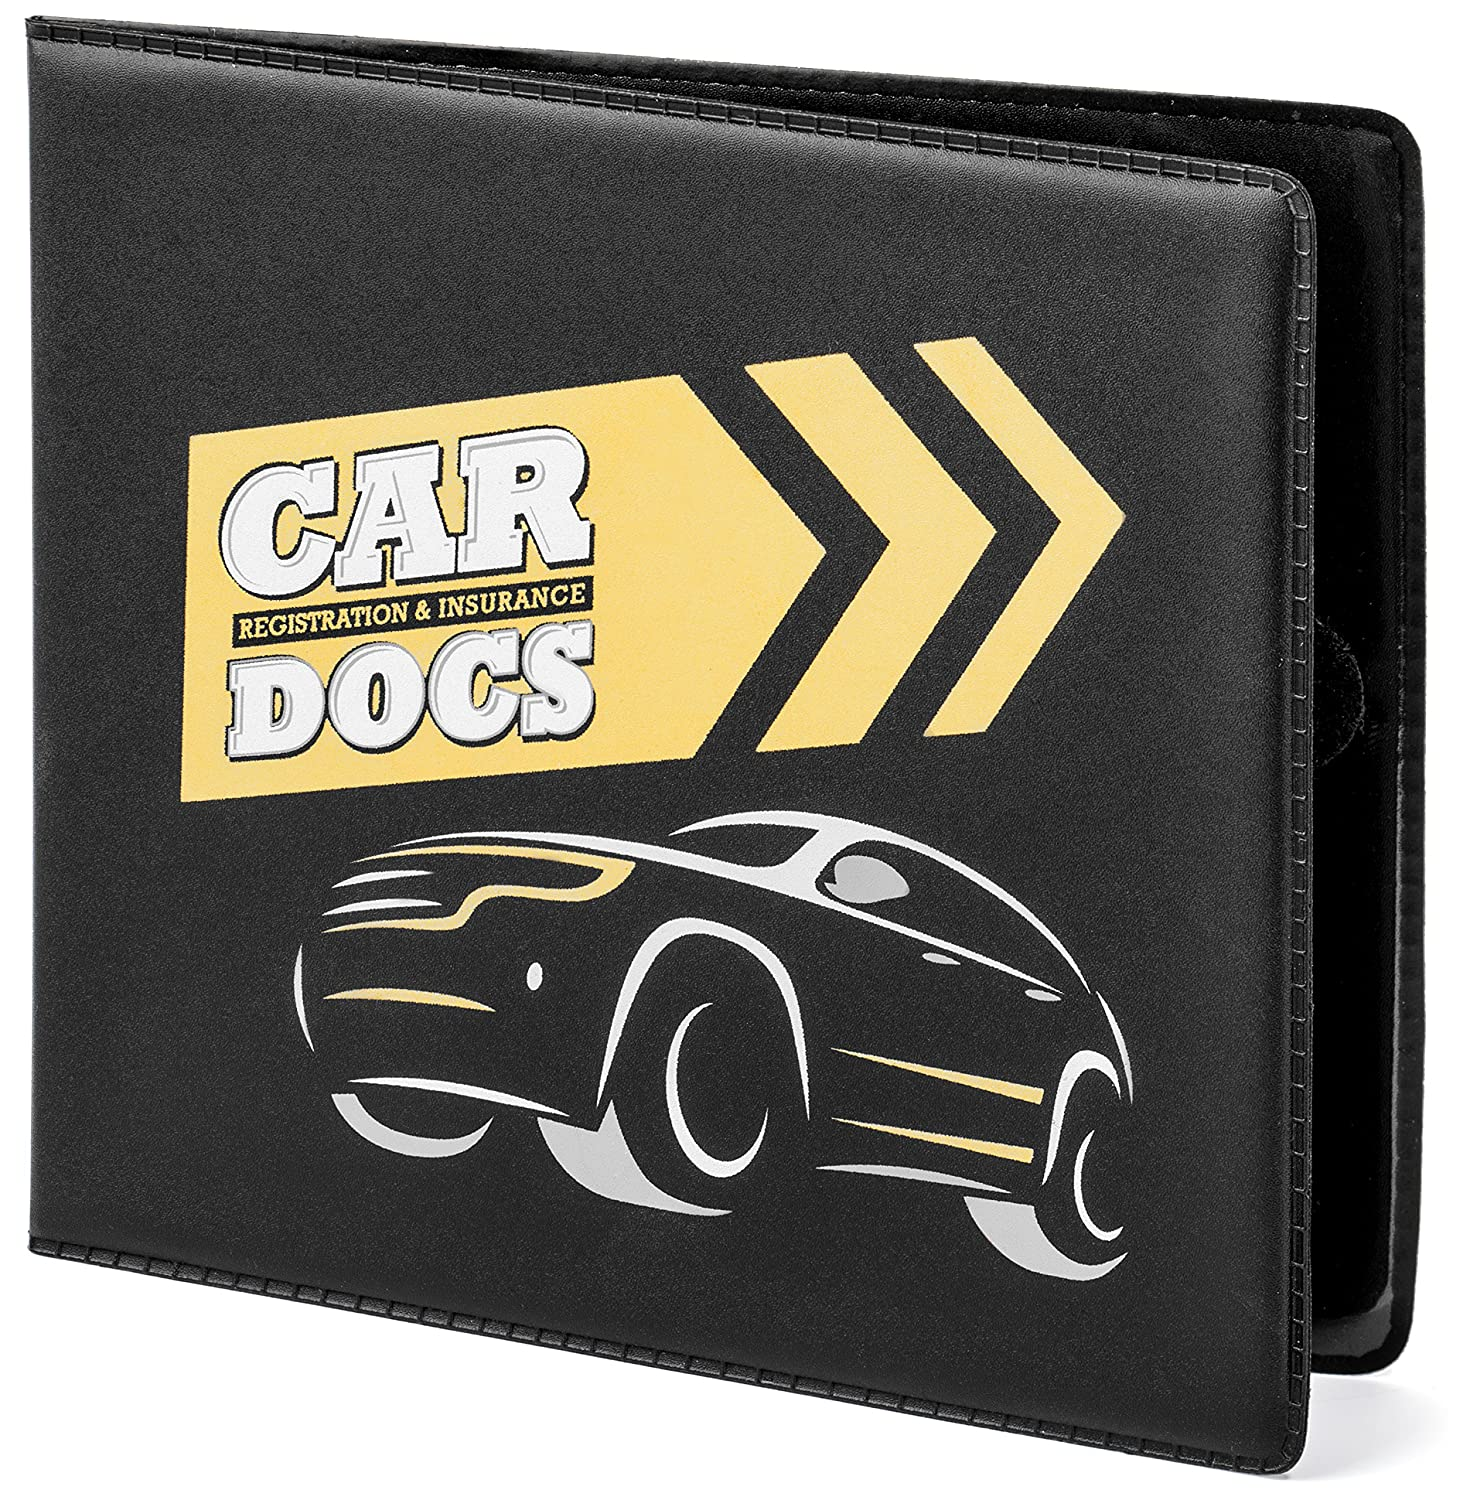 CAR DOCS HOLDER CASE for Insurance, DMV, Registration, AAA, Auto Club, for Car Truck SUV, Motorcycle, touch fastener closure, safely store important documents in glove box or visor flap. Stress reducing MacoodeCompany